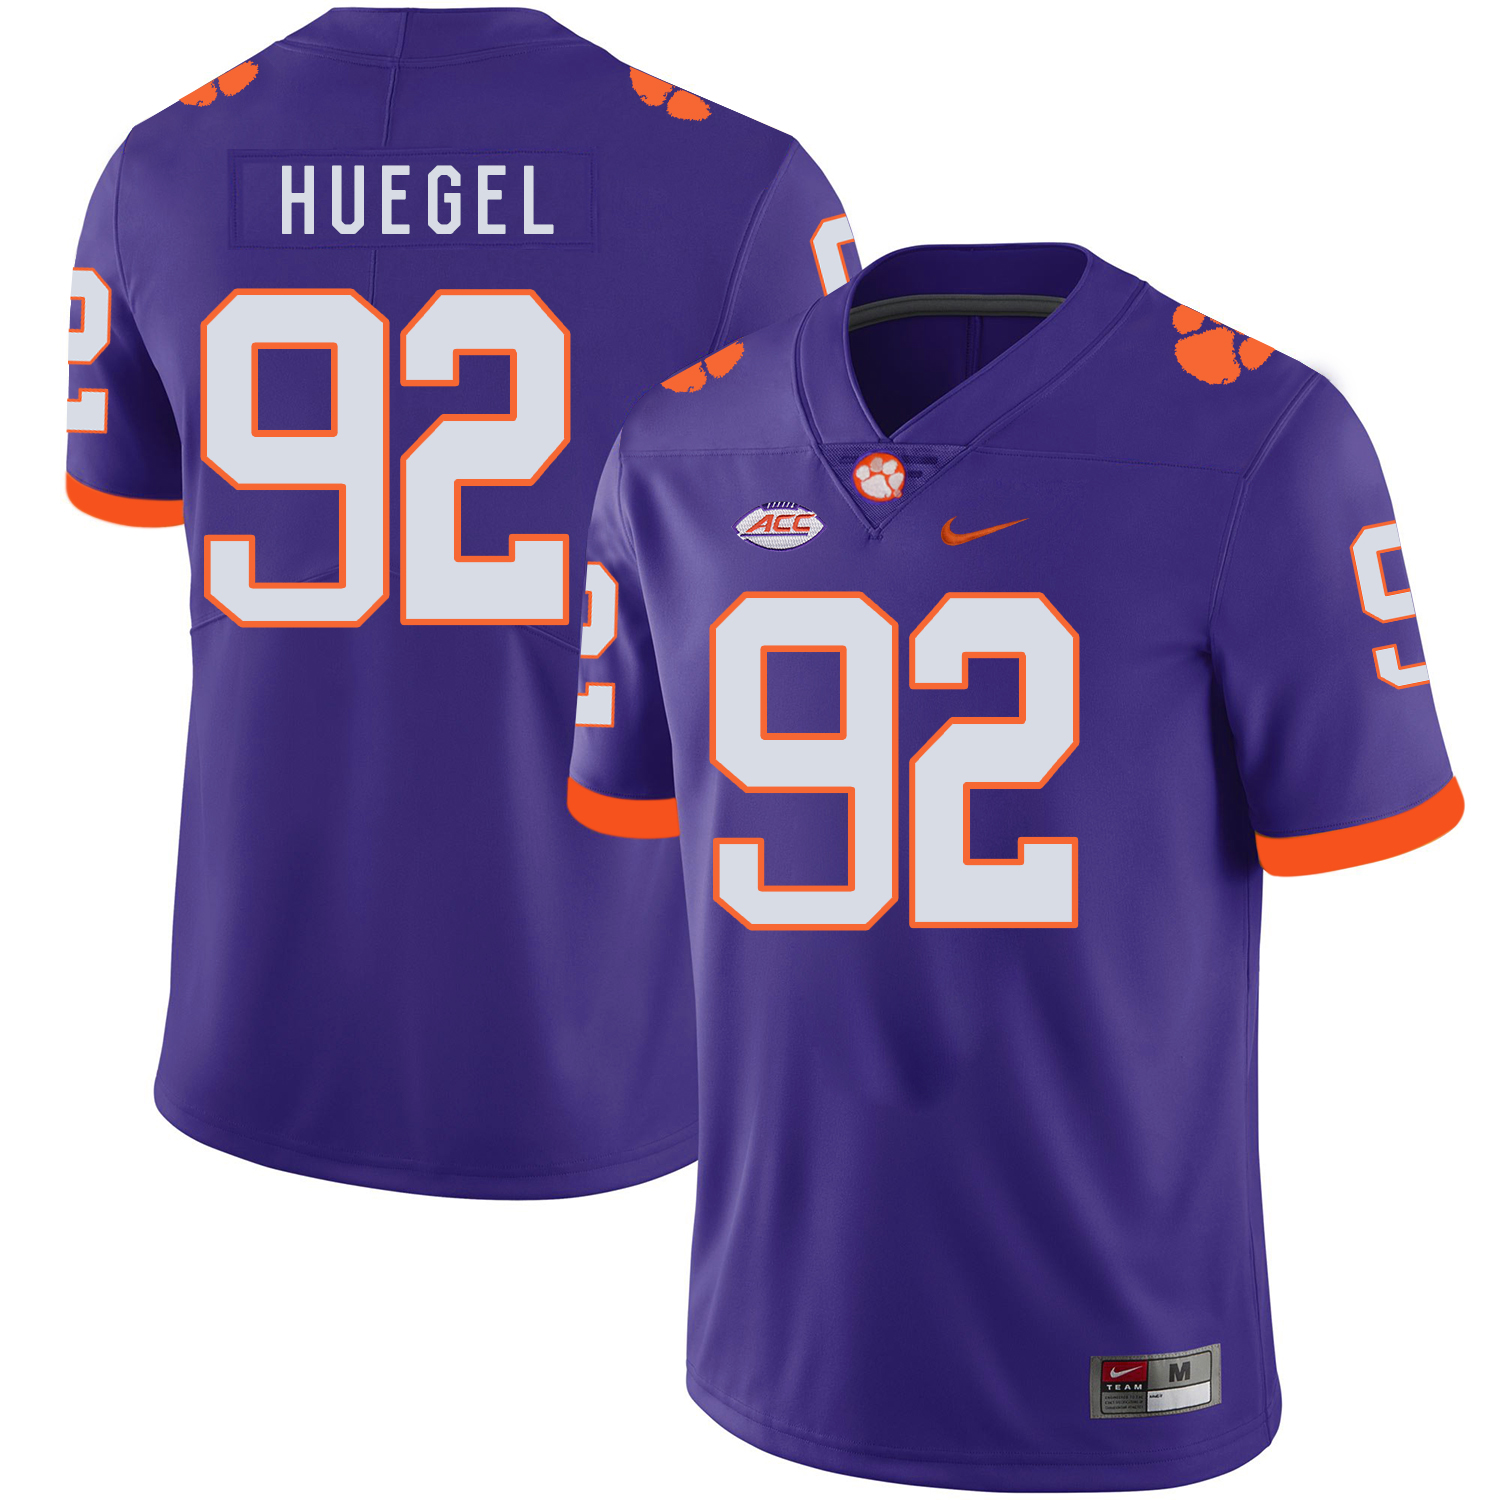 Clemson Tigers 92 Greg Huegel Purple Nike College Football Jersey